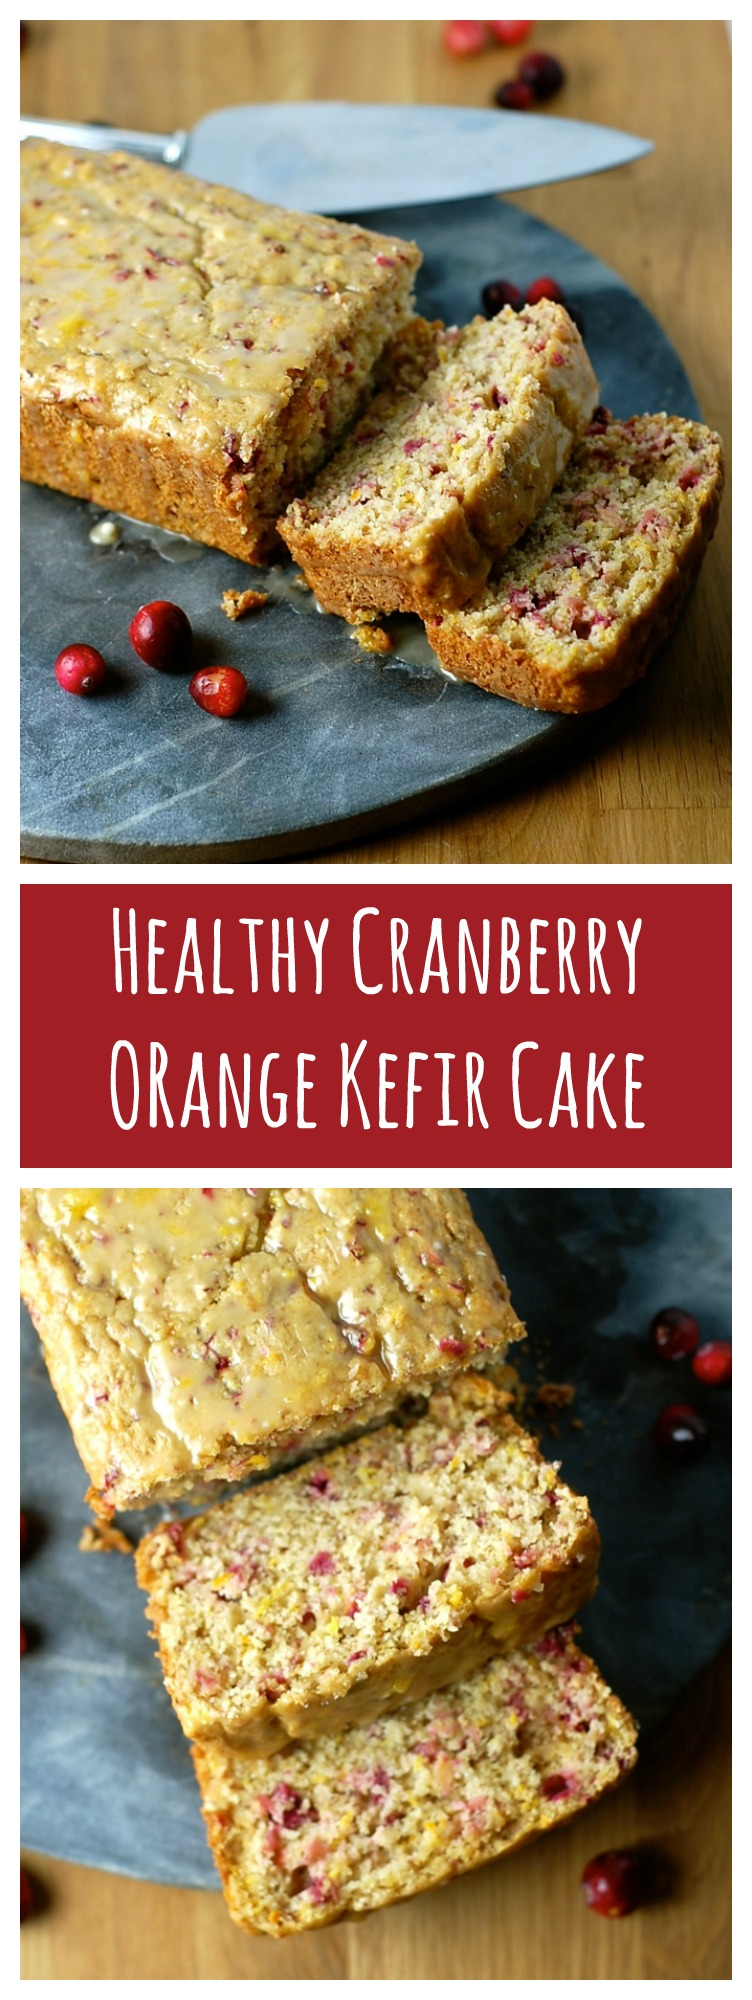 Cranberry Orange Kefir Cake